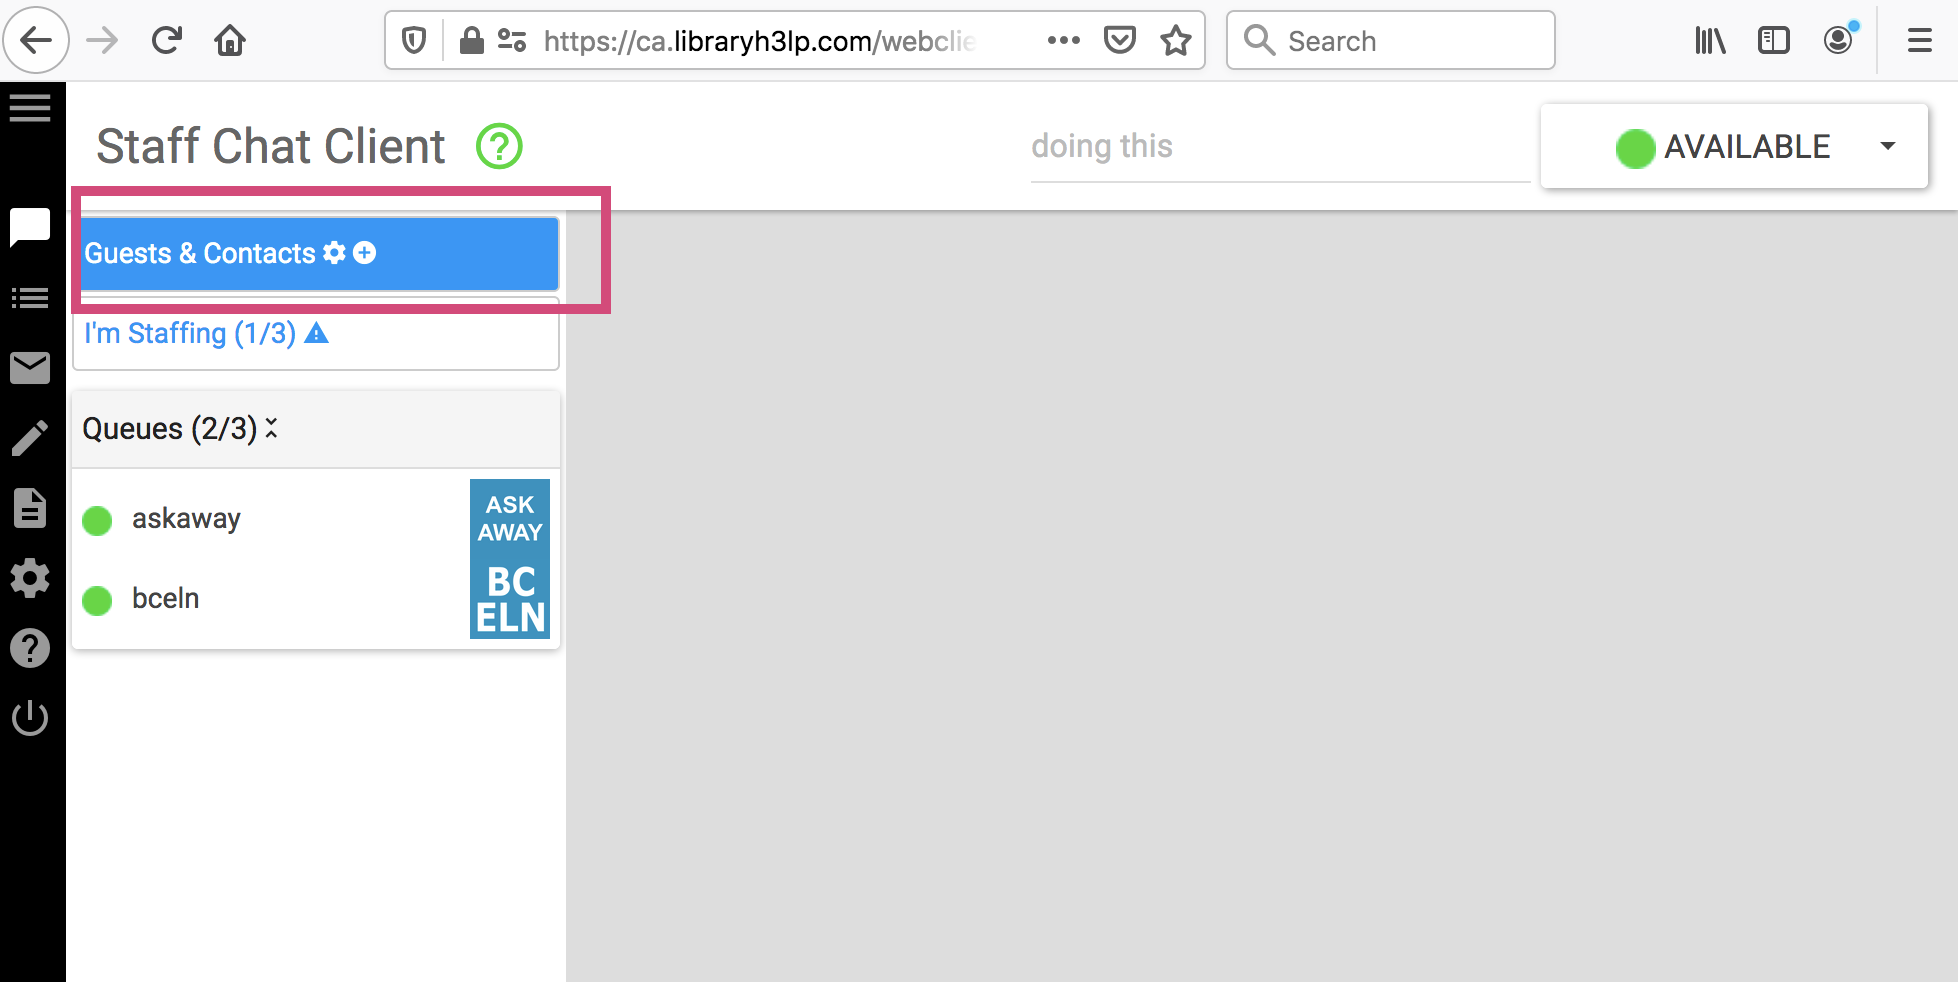 """Image is a screenshot that shows where to click the """"Guests & Contacts"""" tool to return to the main view in the LibraryH3lp webclient."""